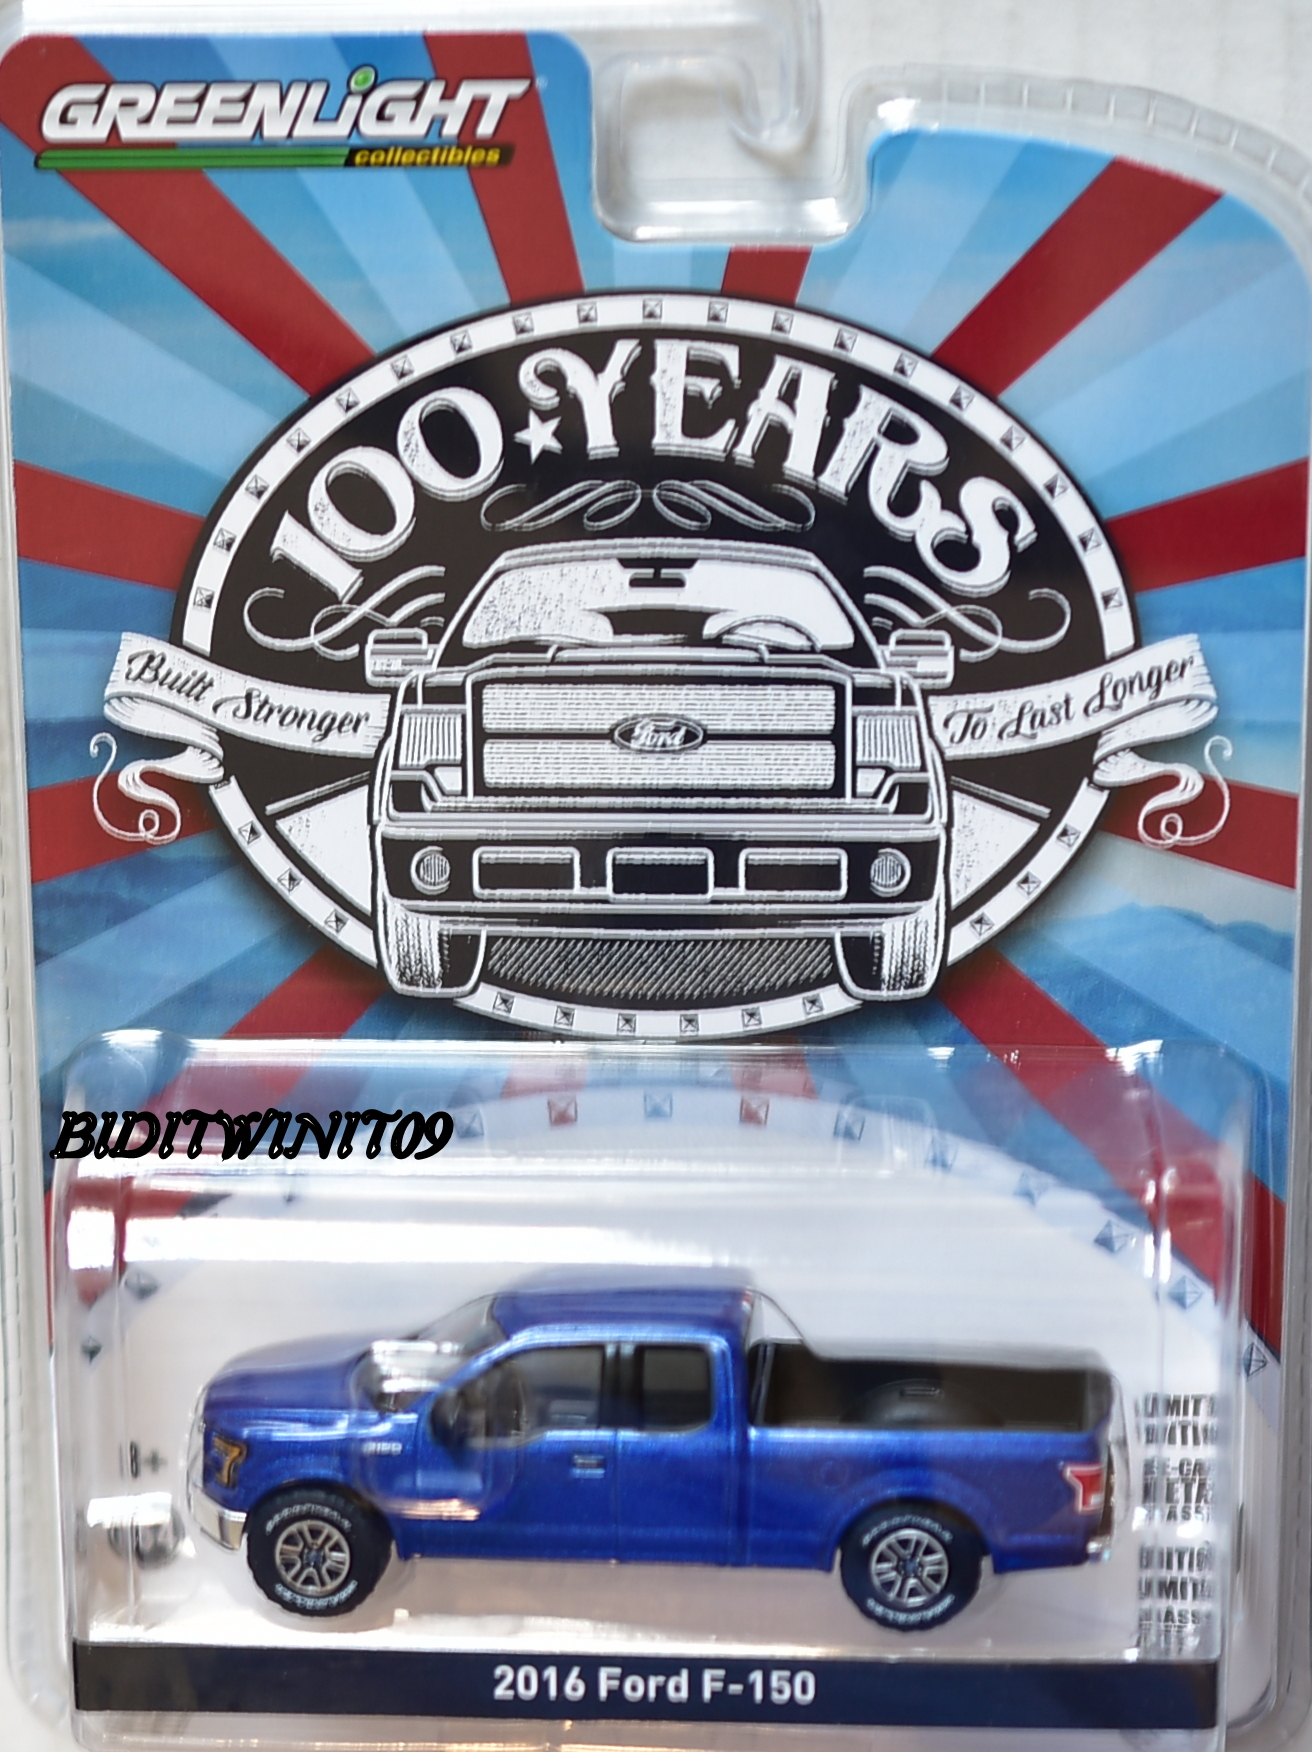 GREENLIGHT 2017 100 YEARS ANNIVERSARY 2016 FORD F-100